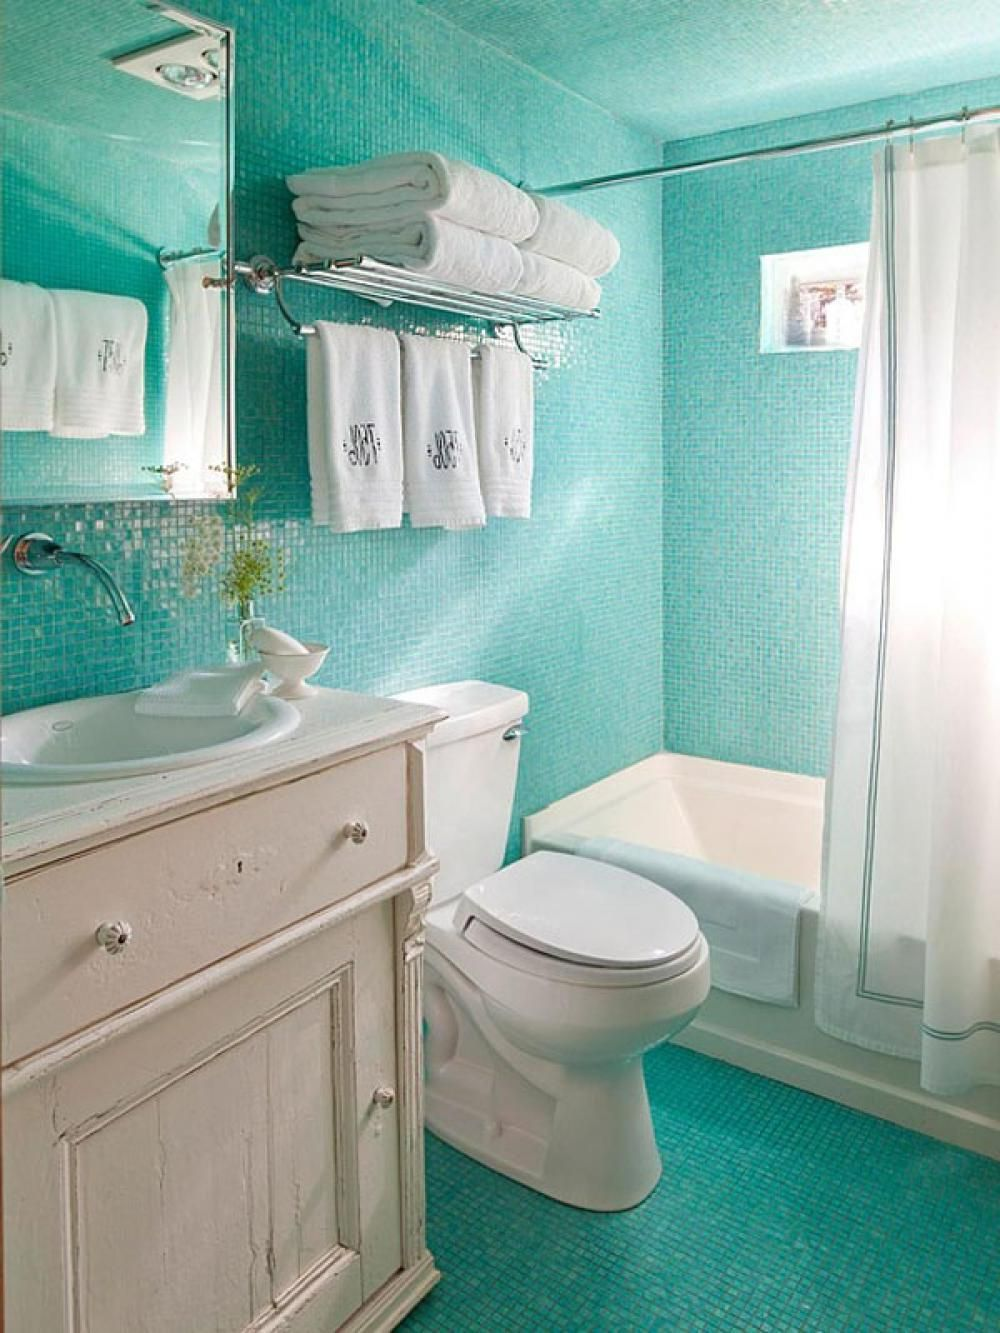 Chic Turquoise Mosaic Tiles Ocean Inspired Bathroom With White - Purple bath towels for small bathroom ideas